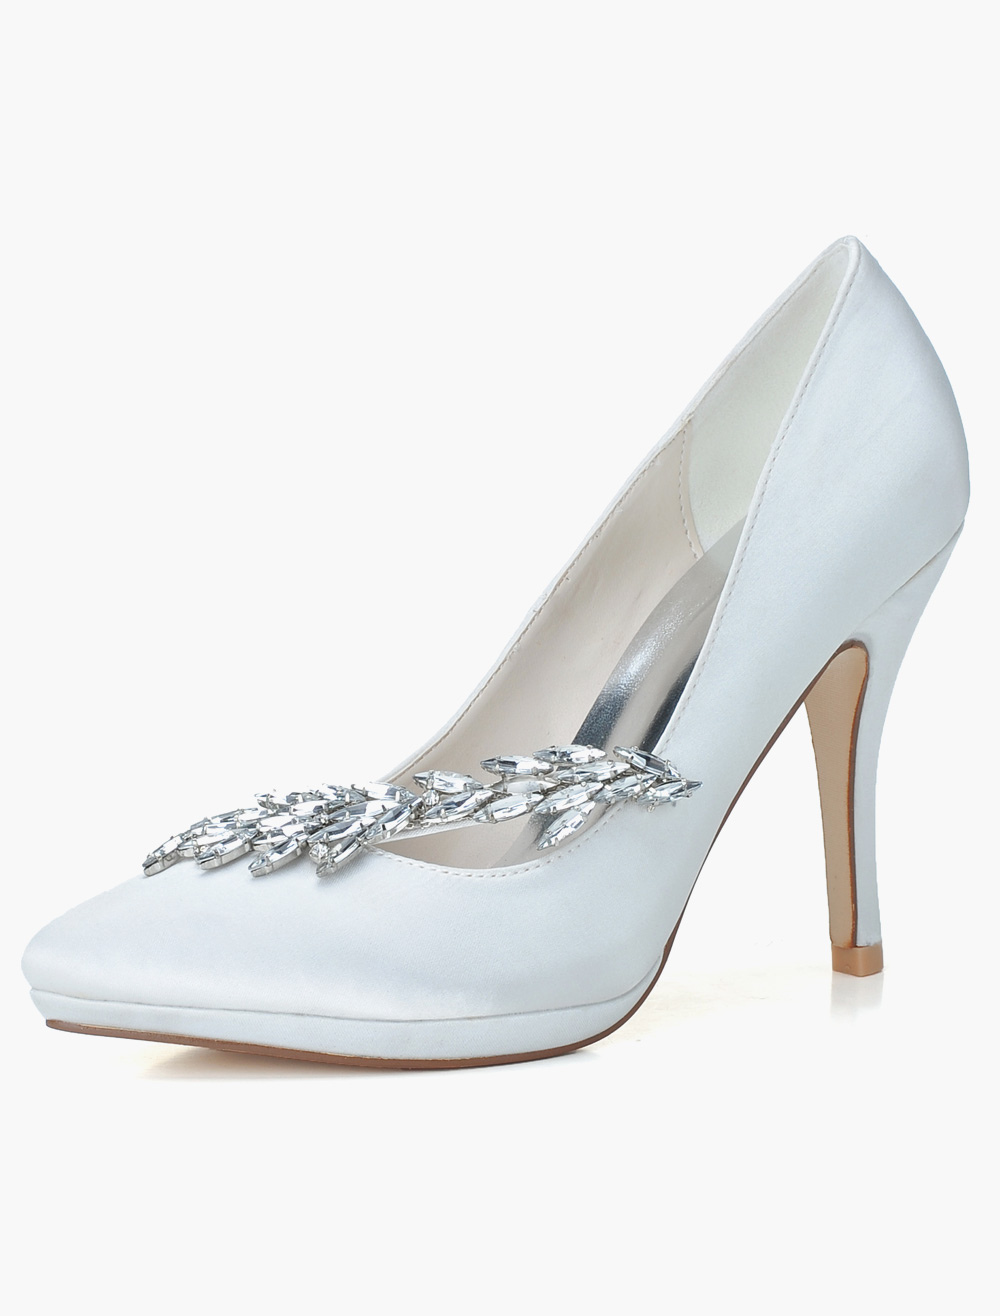 Buy Satin Pointed Toe Slip-On Rhinestones Evening and Bridal Platforms for $47.49 in Milanoo store